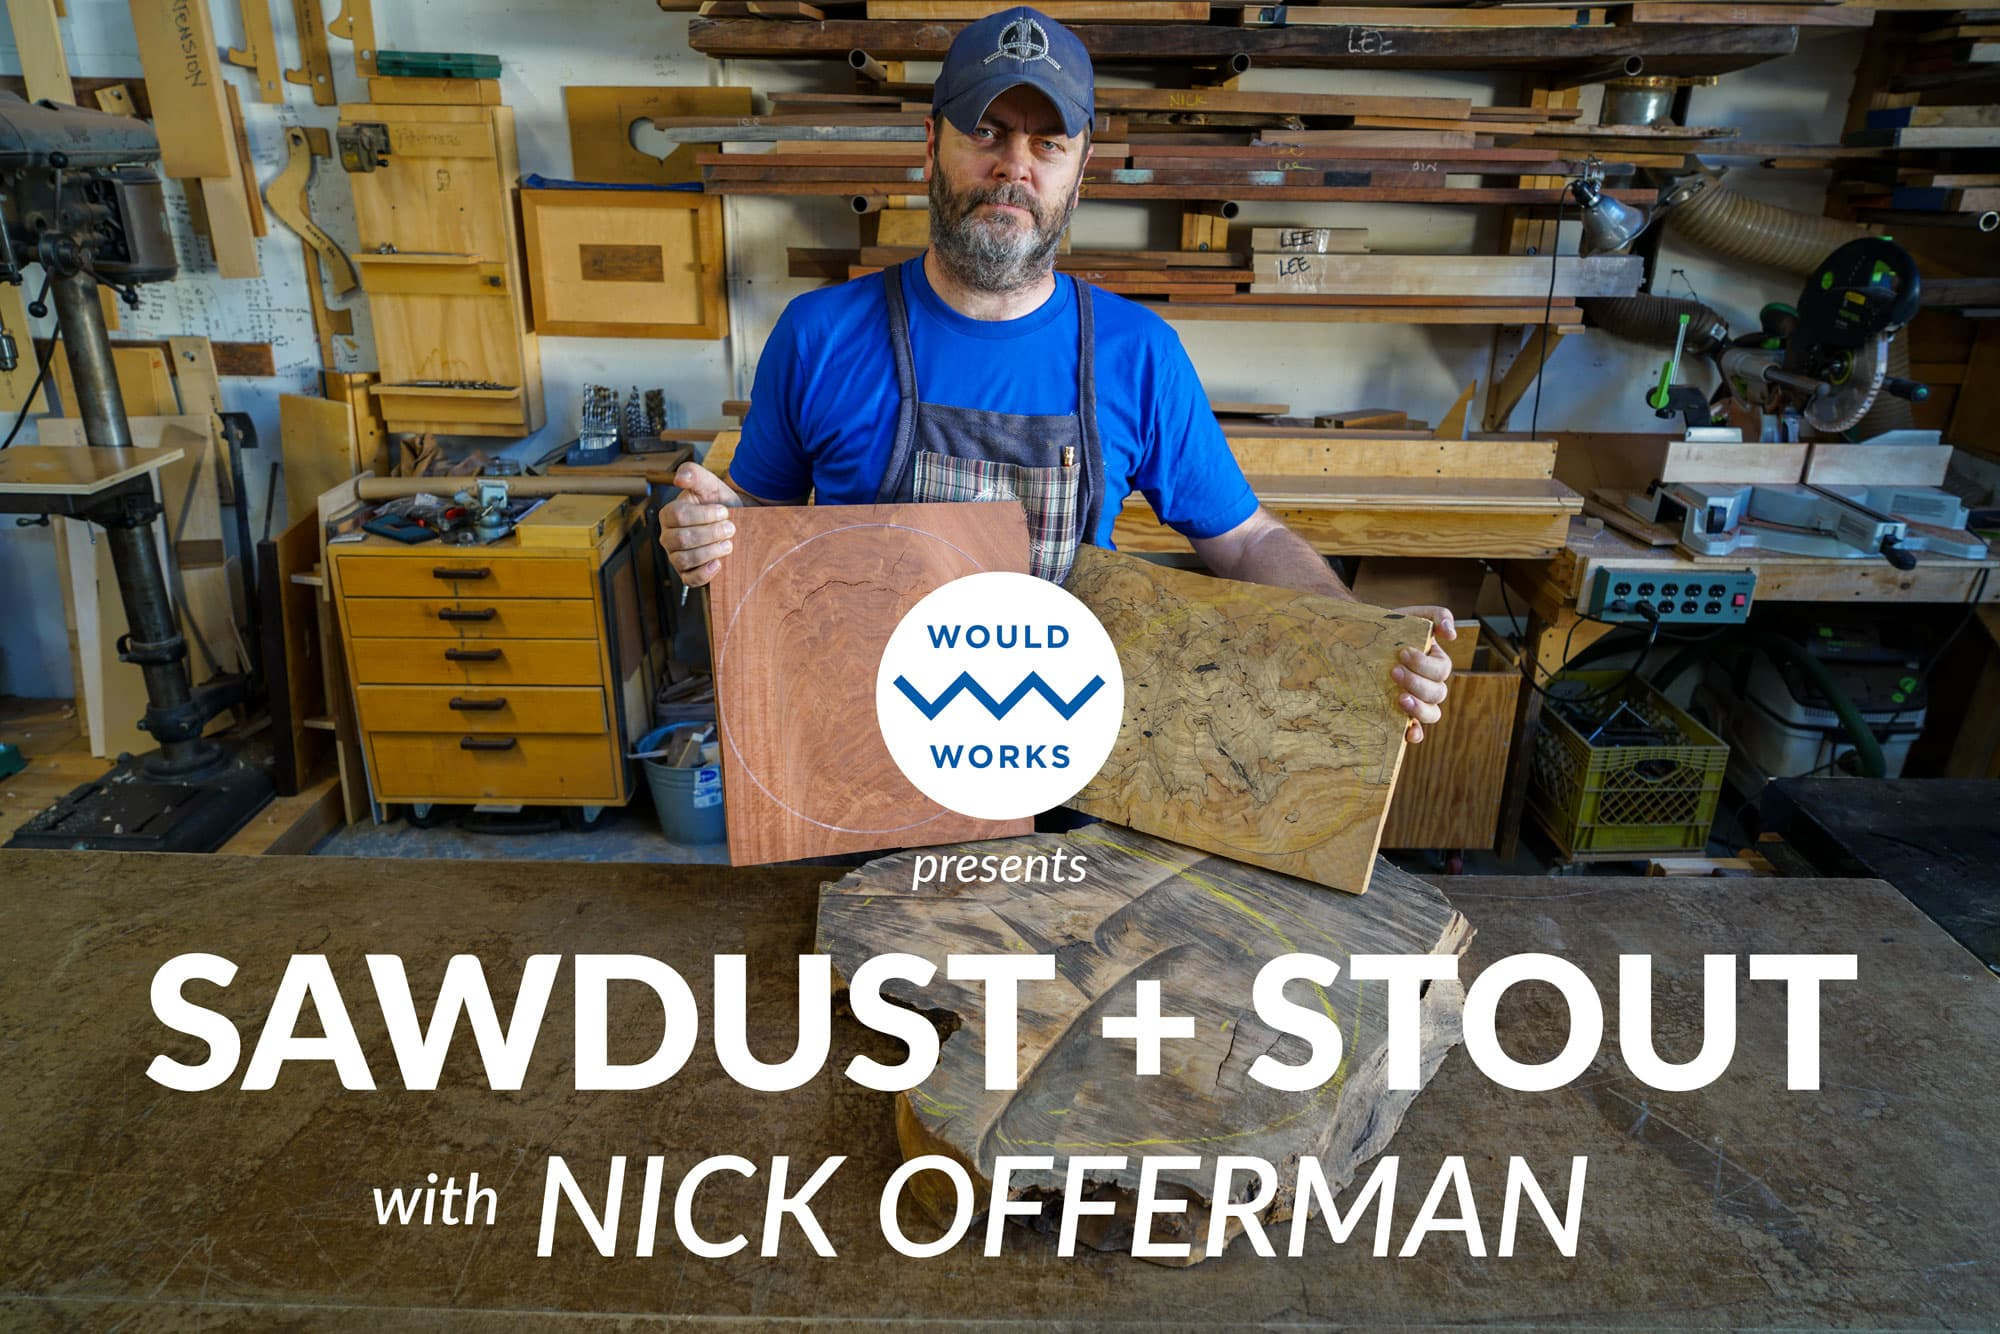 Nick Offerman in the shop.